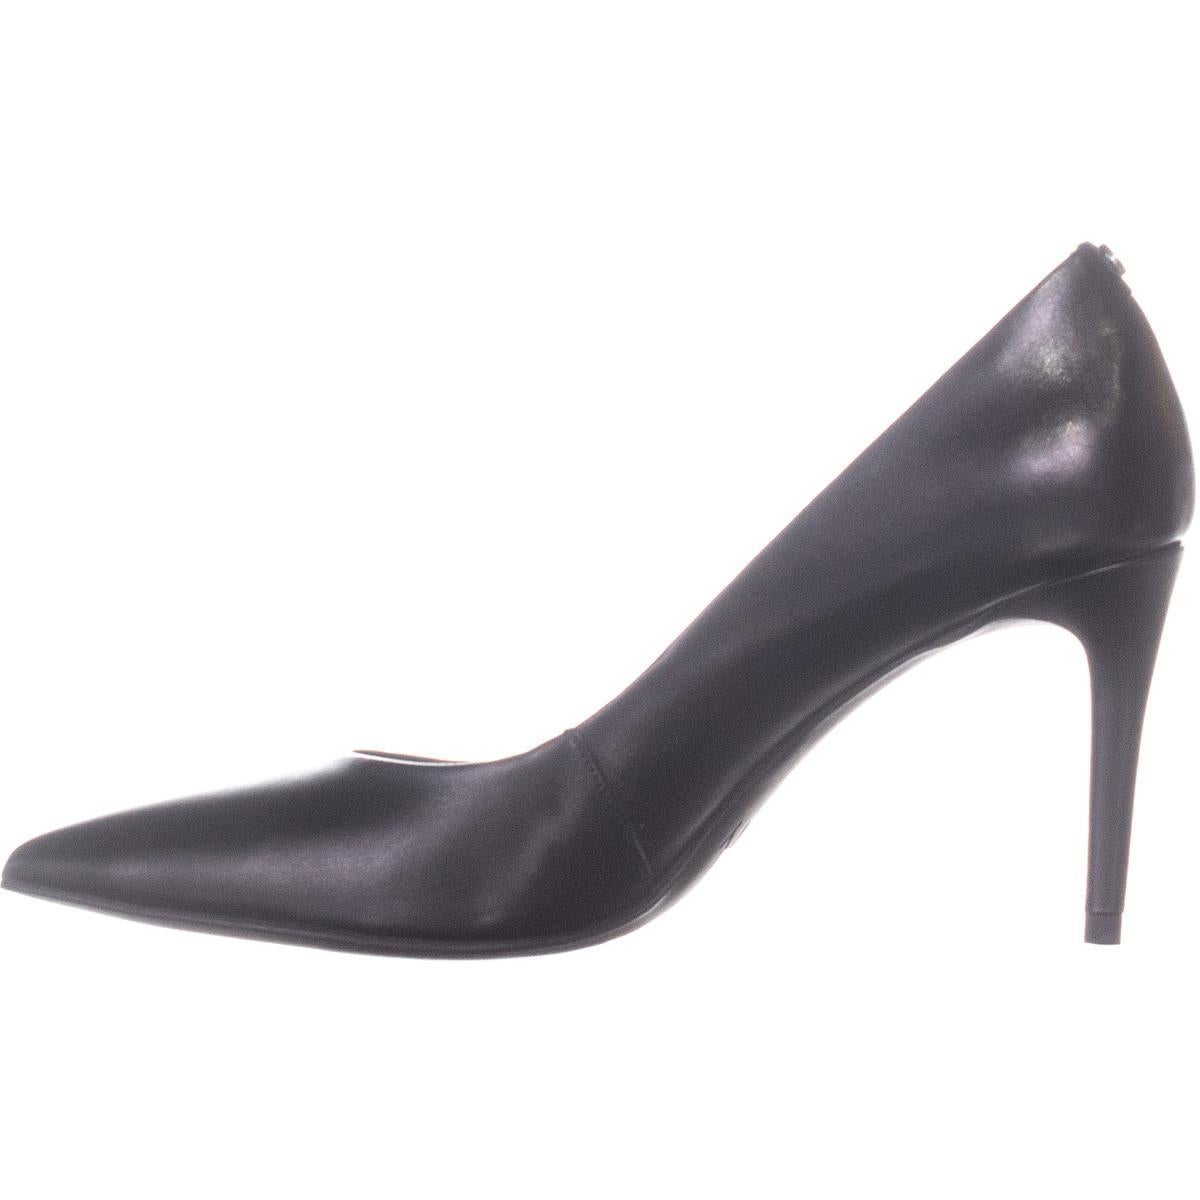 8d3b0317e6 Shop DKNY Letty Pointed Toe Pumps, Black - Free Shipping Today - Overstock  - 26063264